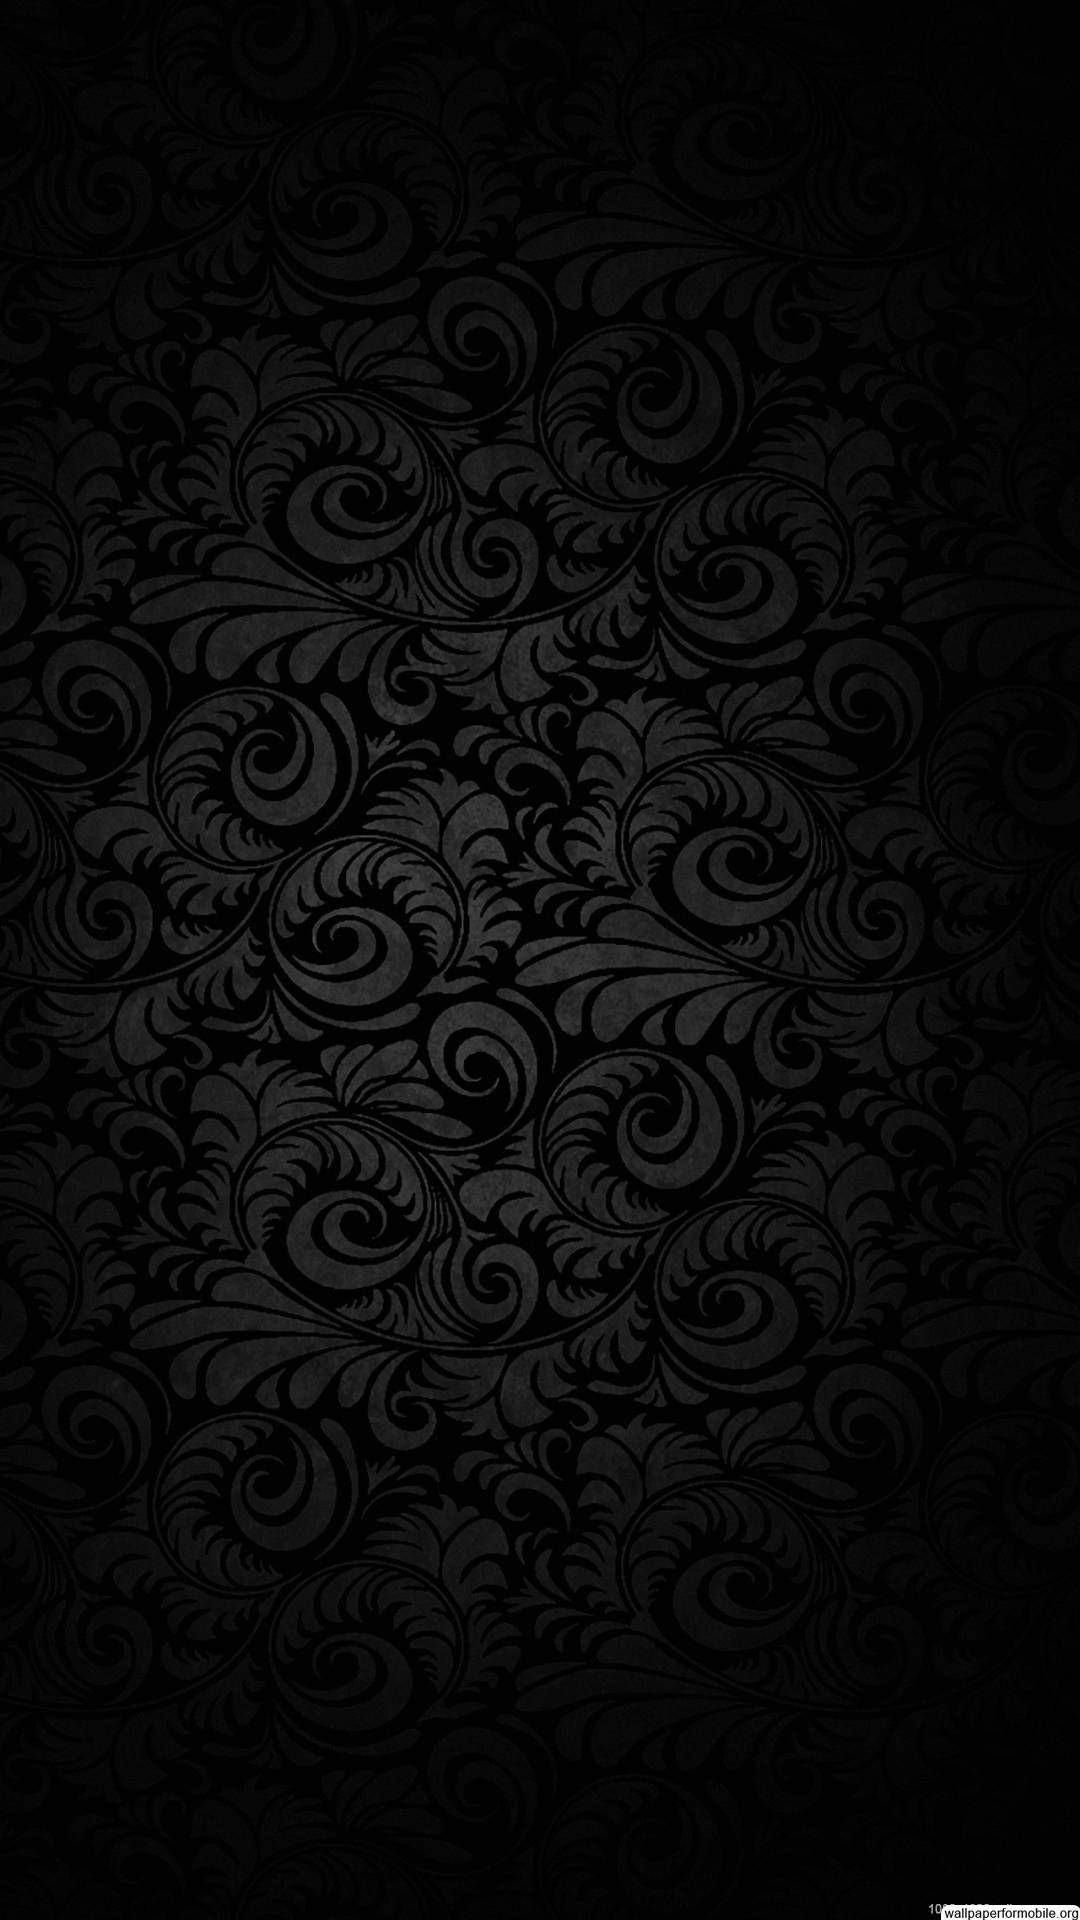 So Ive Got This Thing For Darker Wallpapers Part Mobile Black Hd Wallpaper Wallpaper I Iphone 5s Wallpaper Dark Desktop Backgrounds Black Wallpaper For Mobile